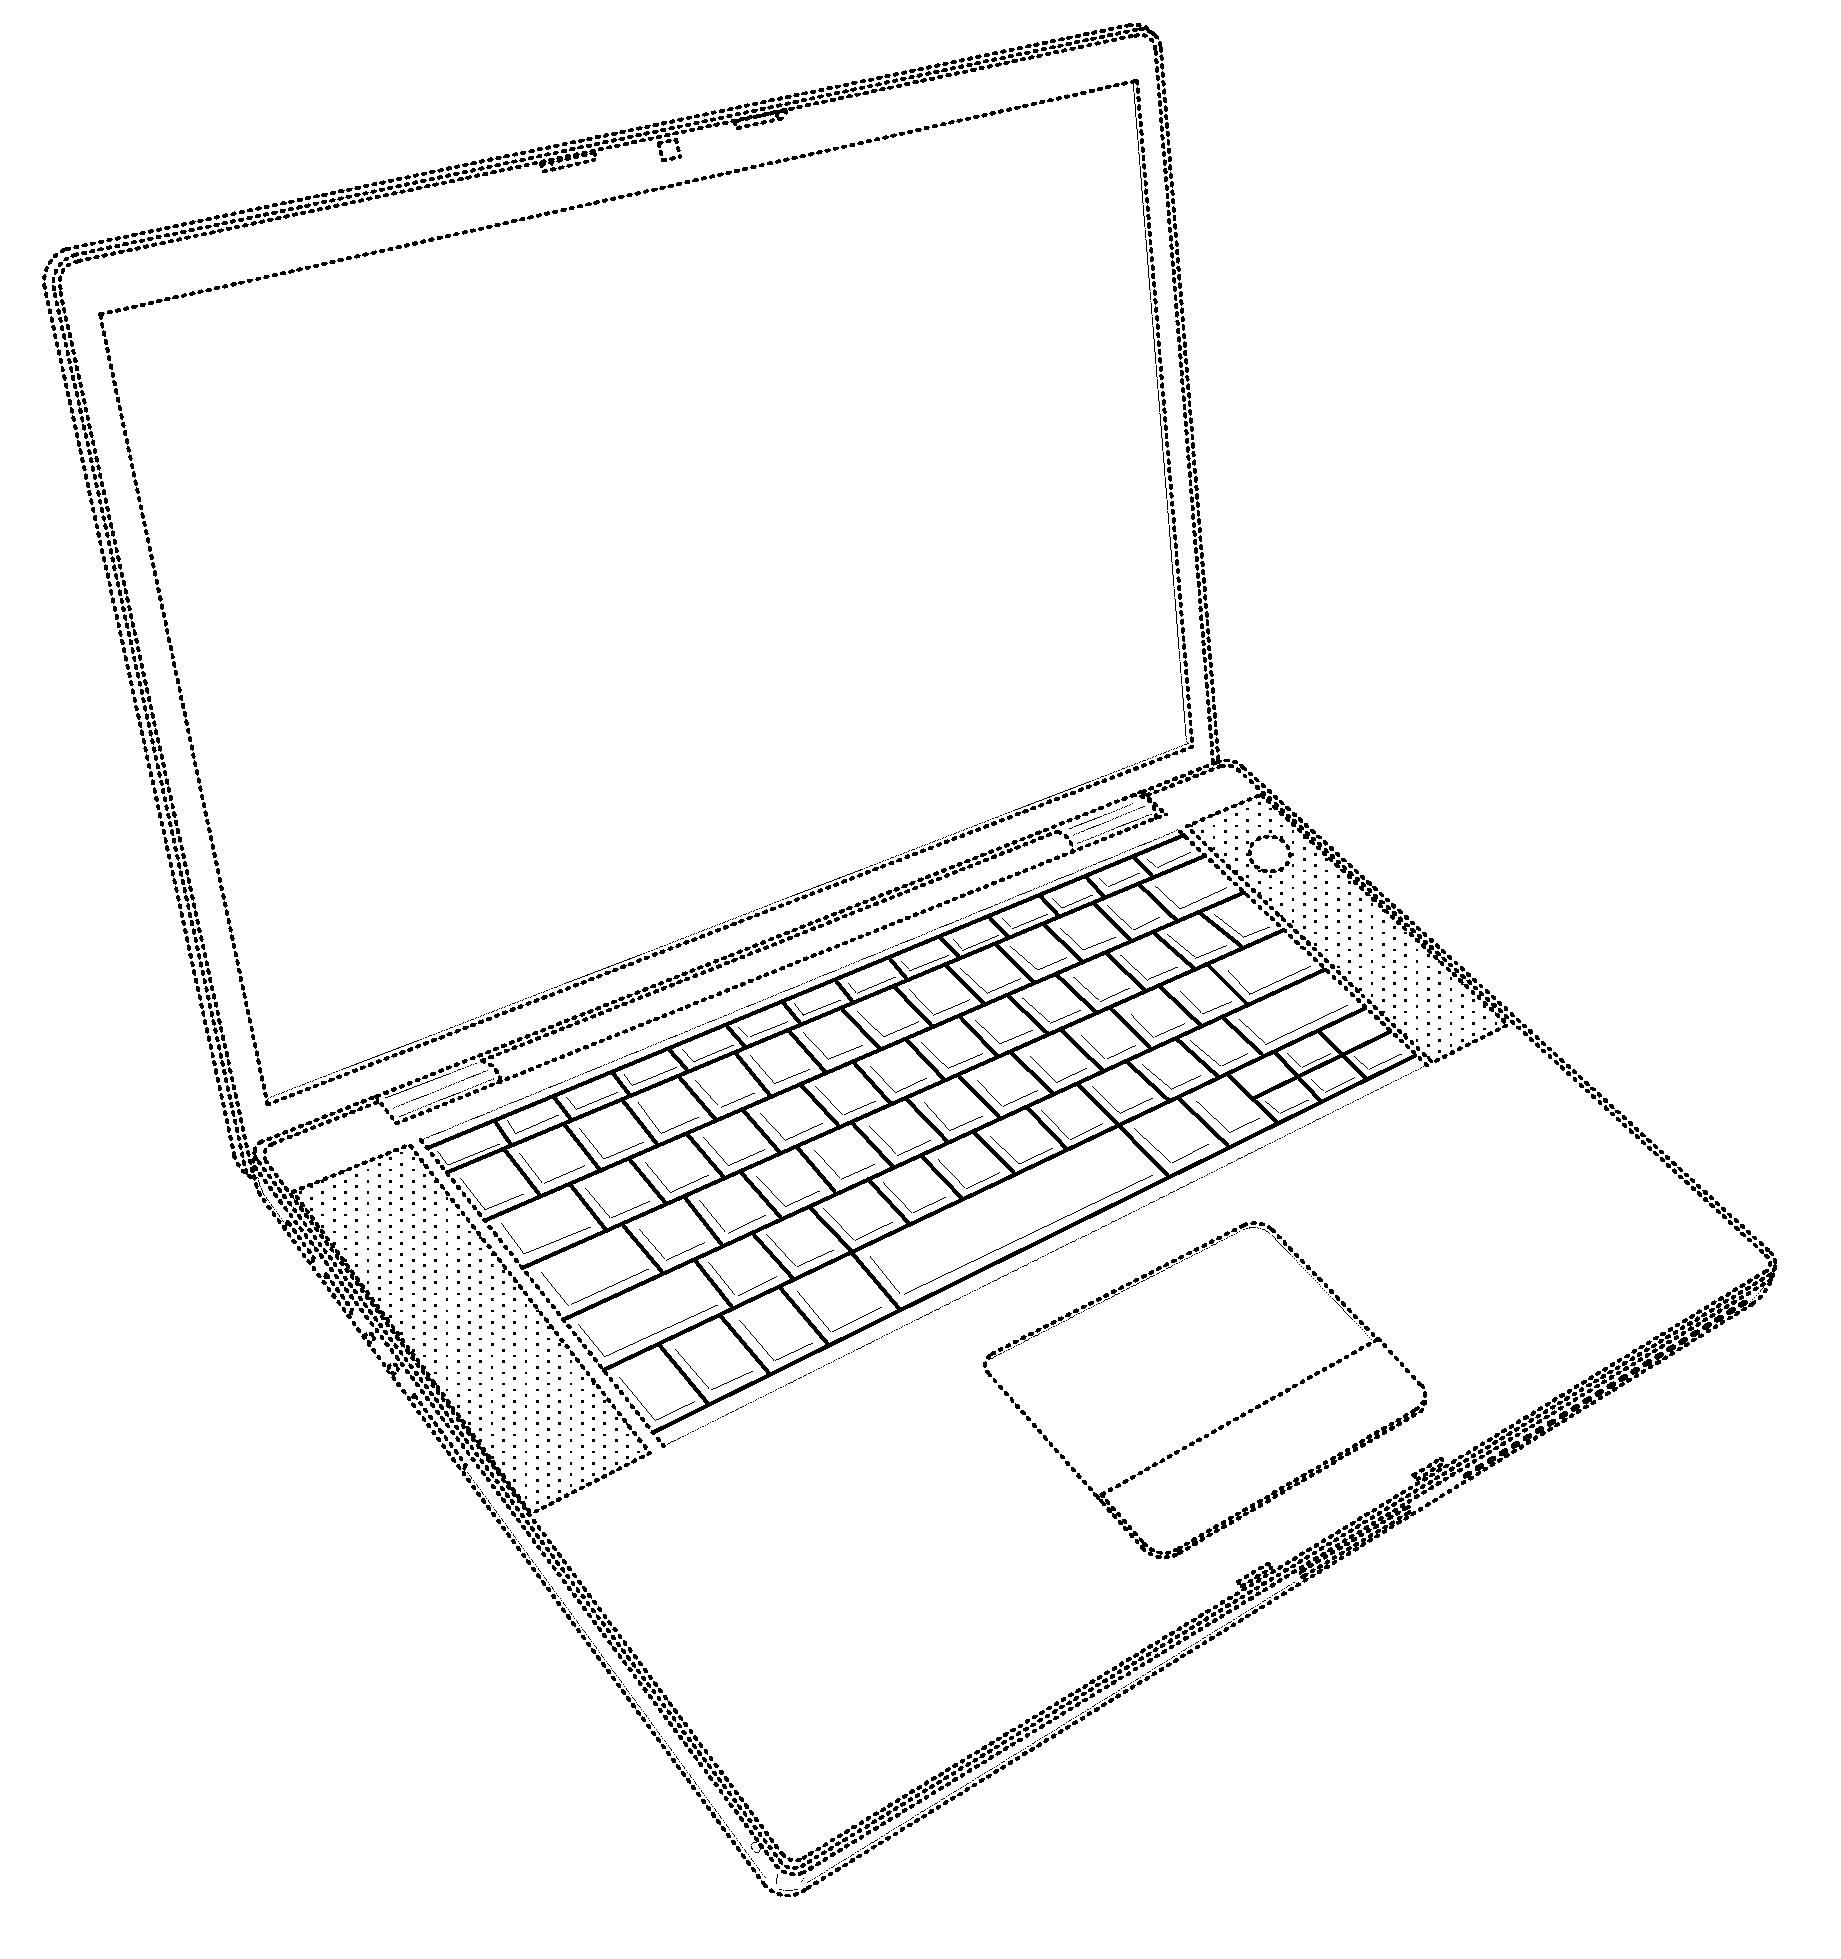 Apple  patent by Steve Jobs from 2008 for computing device - USD571364